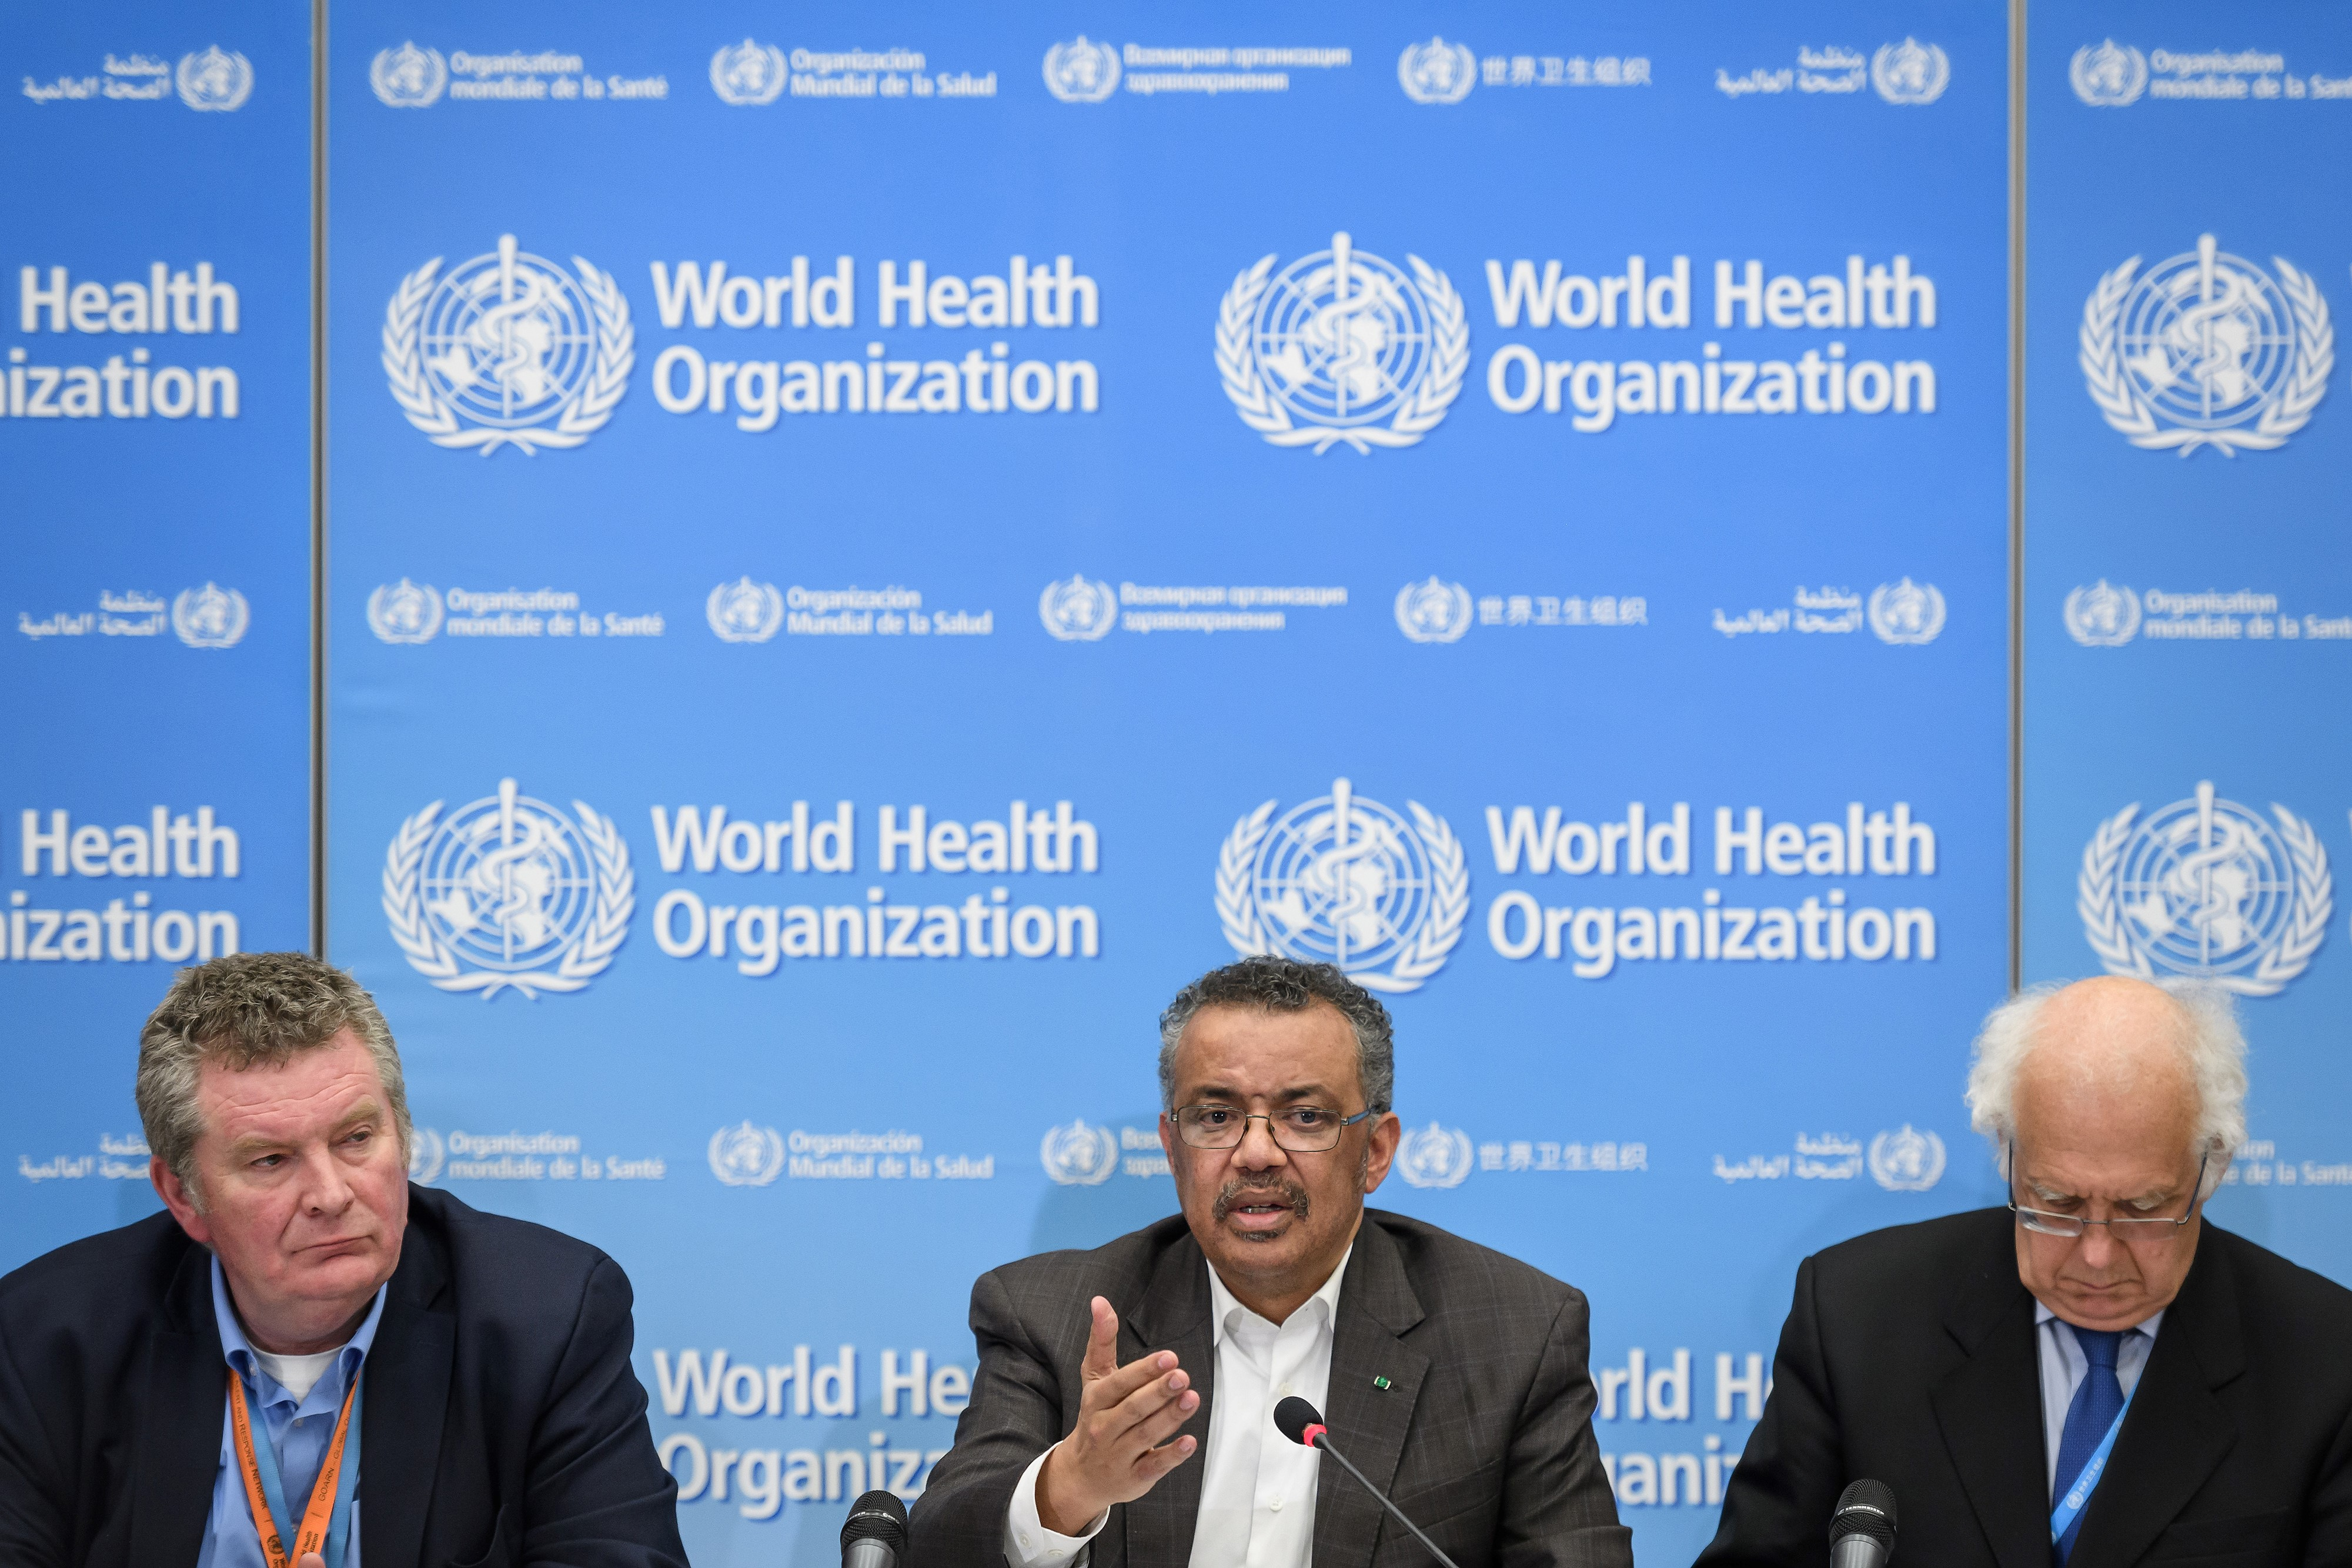 (From L) World Health Organization (WHO) Health Emergencies Programme head Michael Ryan, WHO Director-General Tedros Adhanom Ghebreyesus and WHO Emergency Committee Chair Didier Houssin speak during a press conference following a WHO Emergency committee to discuss whether the Coronavirus, the SARS-like virus, outbreak that began in China constitutes an international health emergency, on January 30, 2020 in Geneva. (FABRICE COFFRINI/AFP via Getty Images)